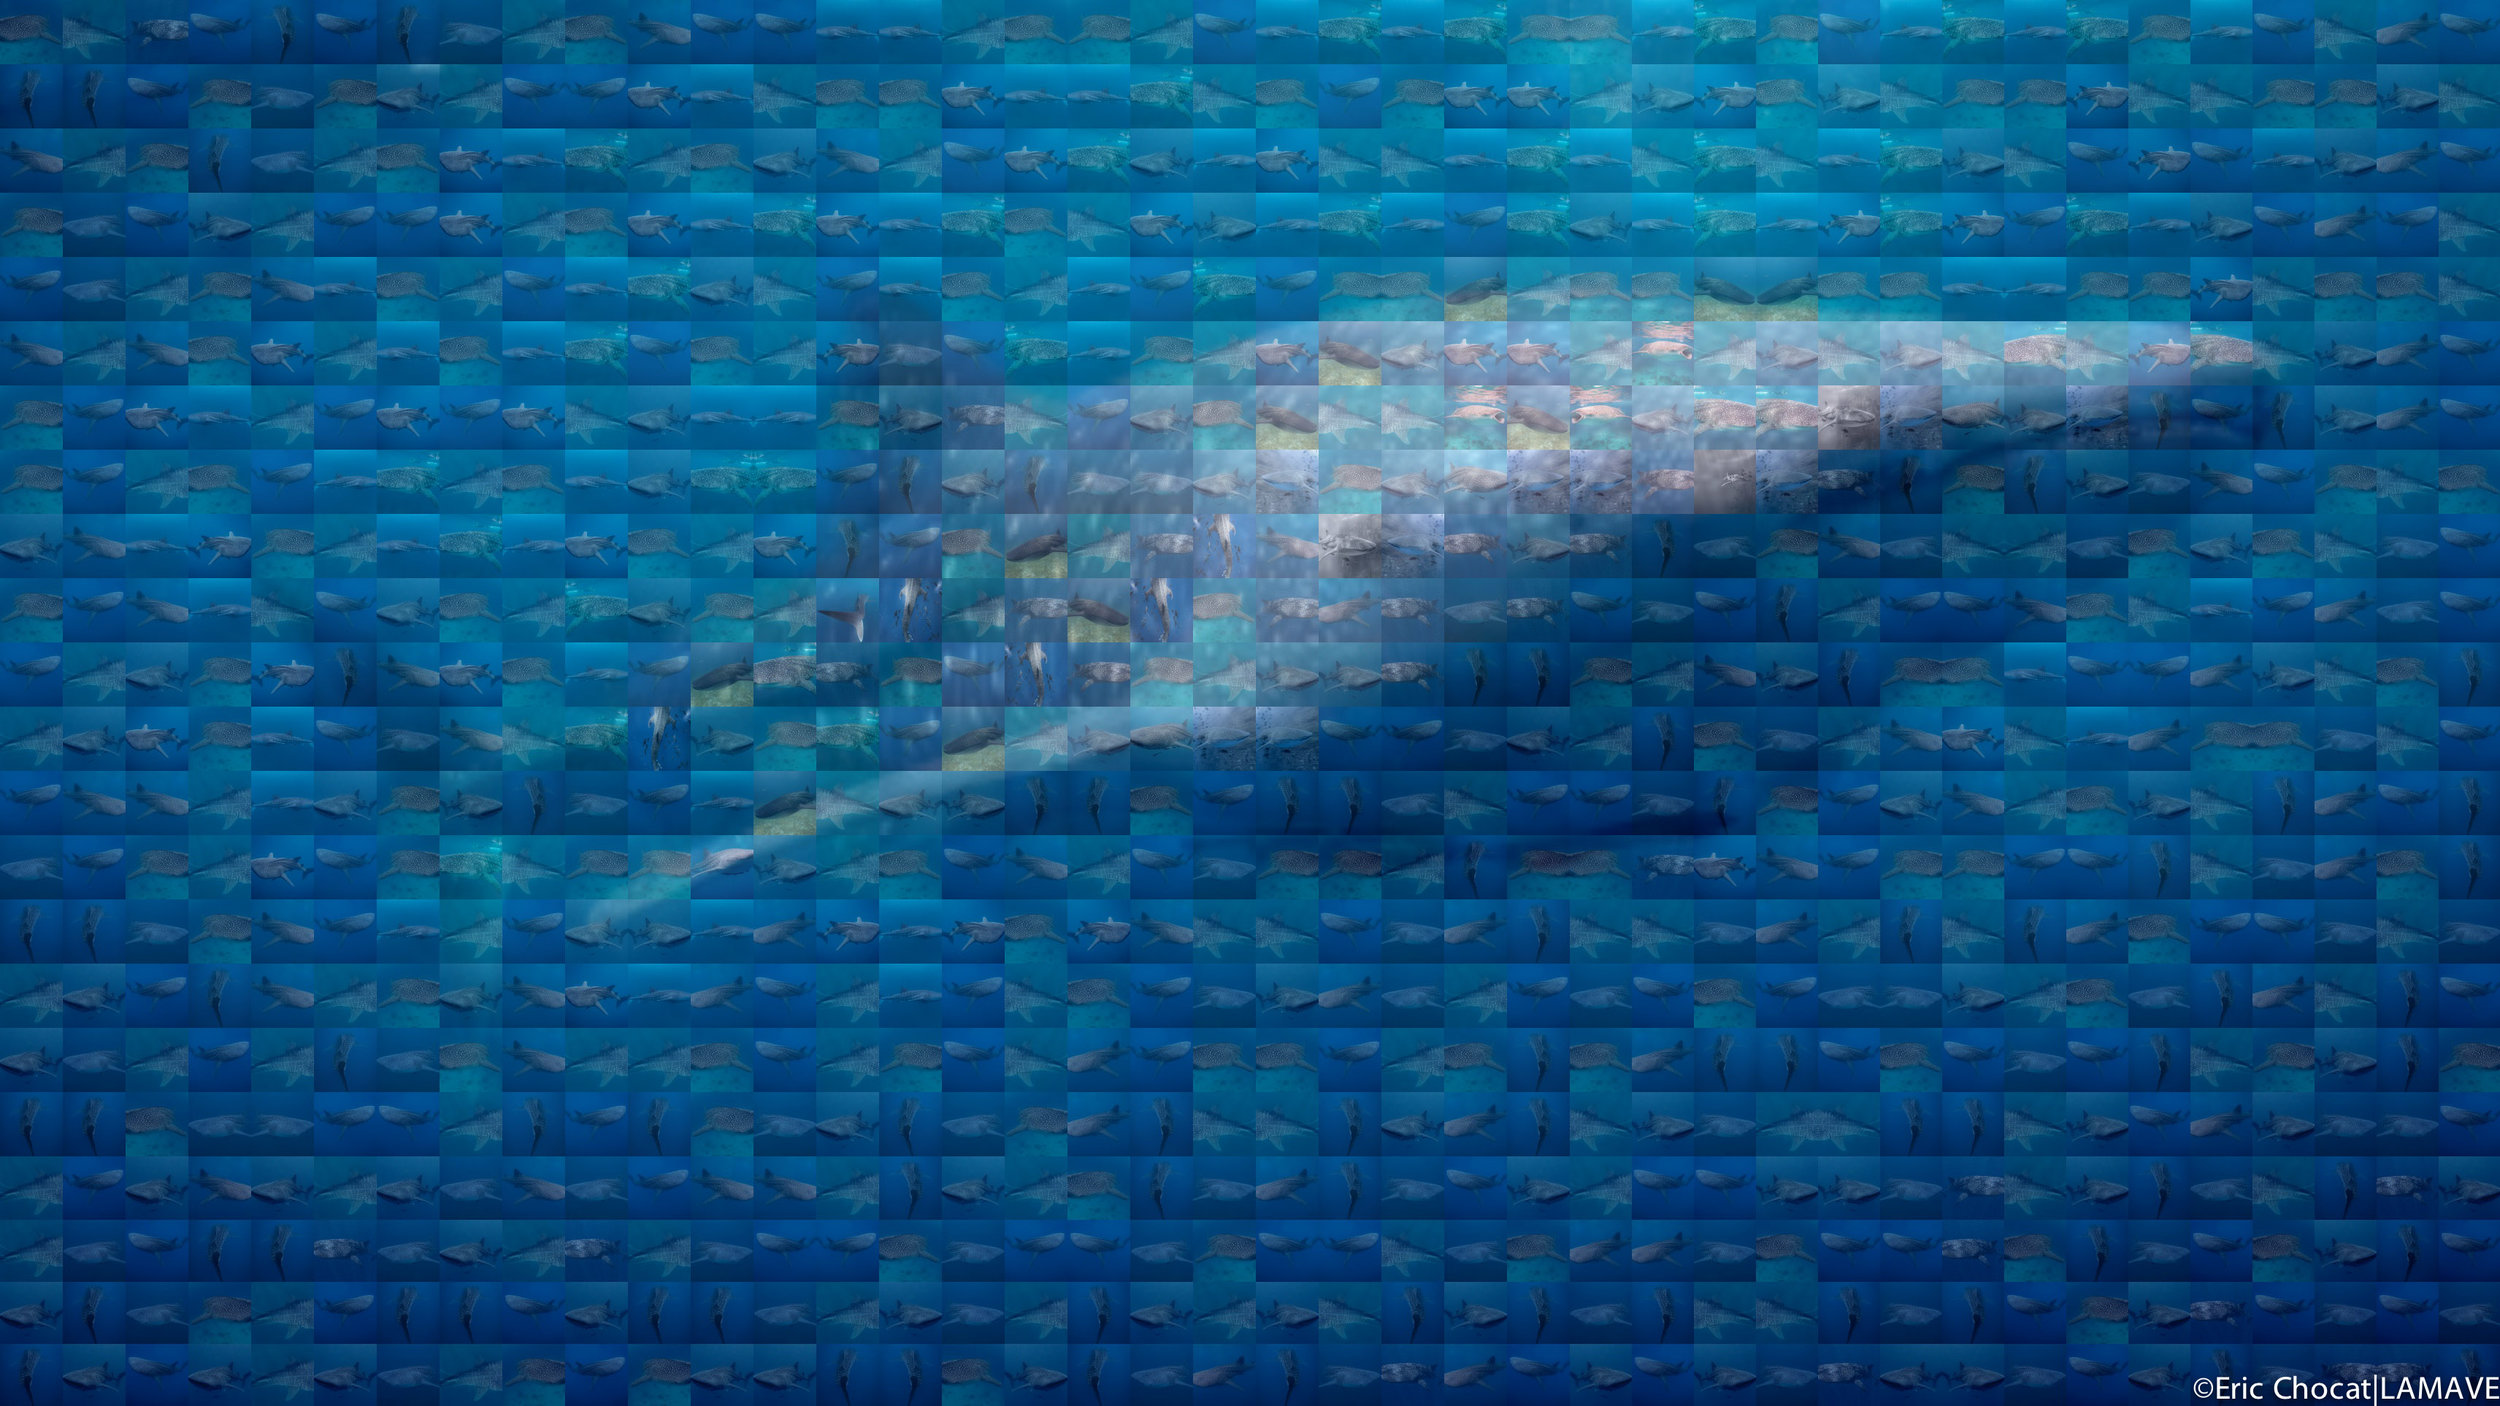 Whale shark mosaic by Eric Chocat.